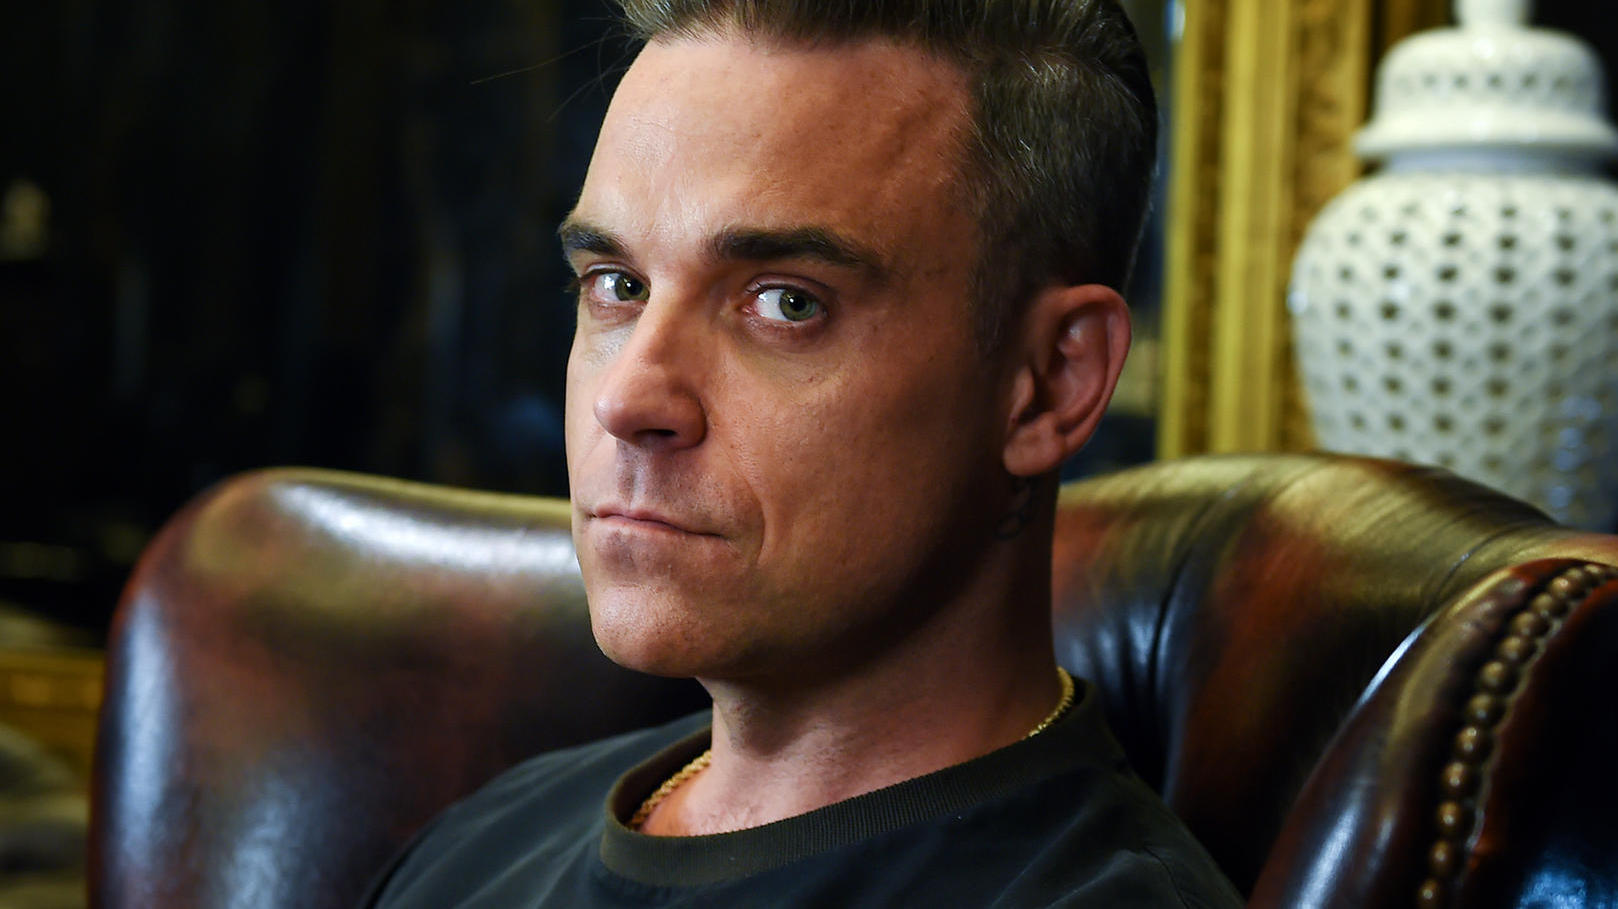 robbie williams psychische probleme krankheit die mich. Black Bedroom Furniture Sets. Home Design Ideas